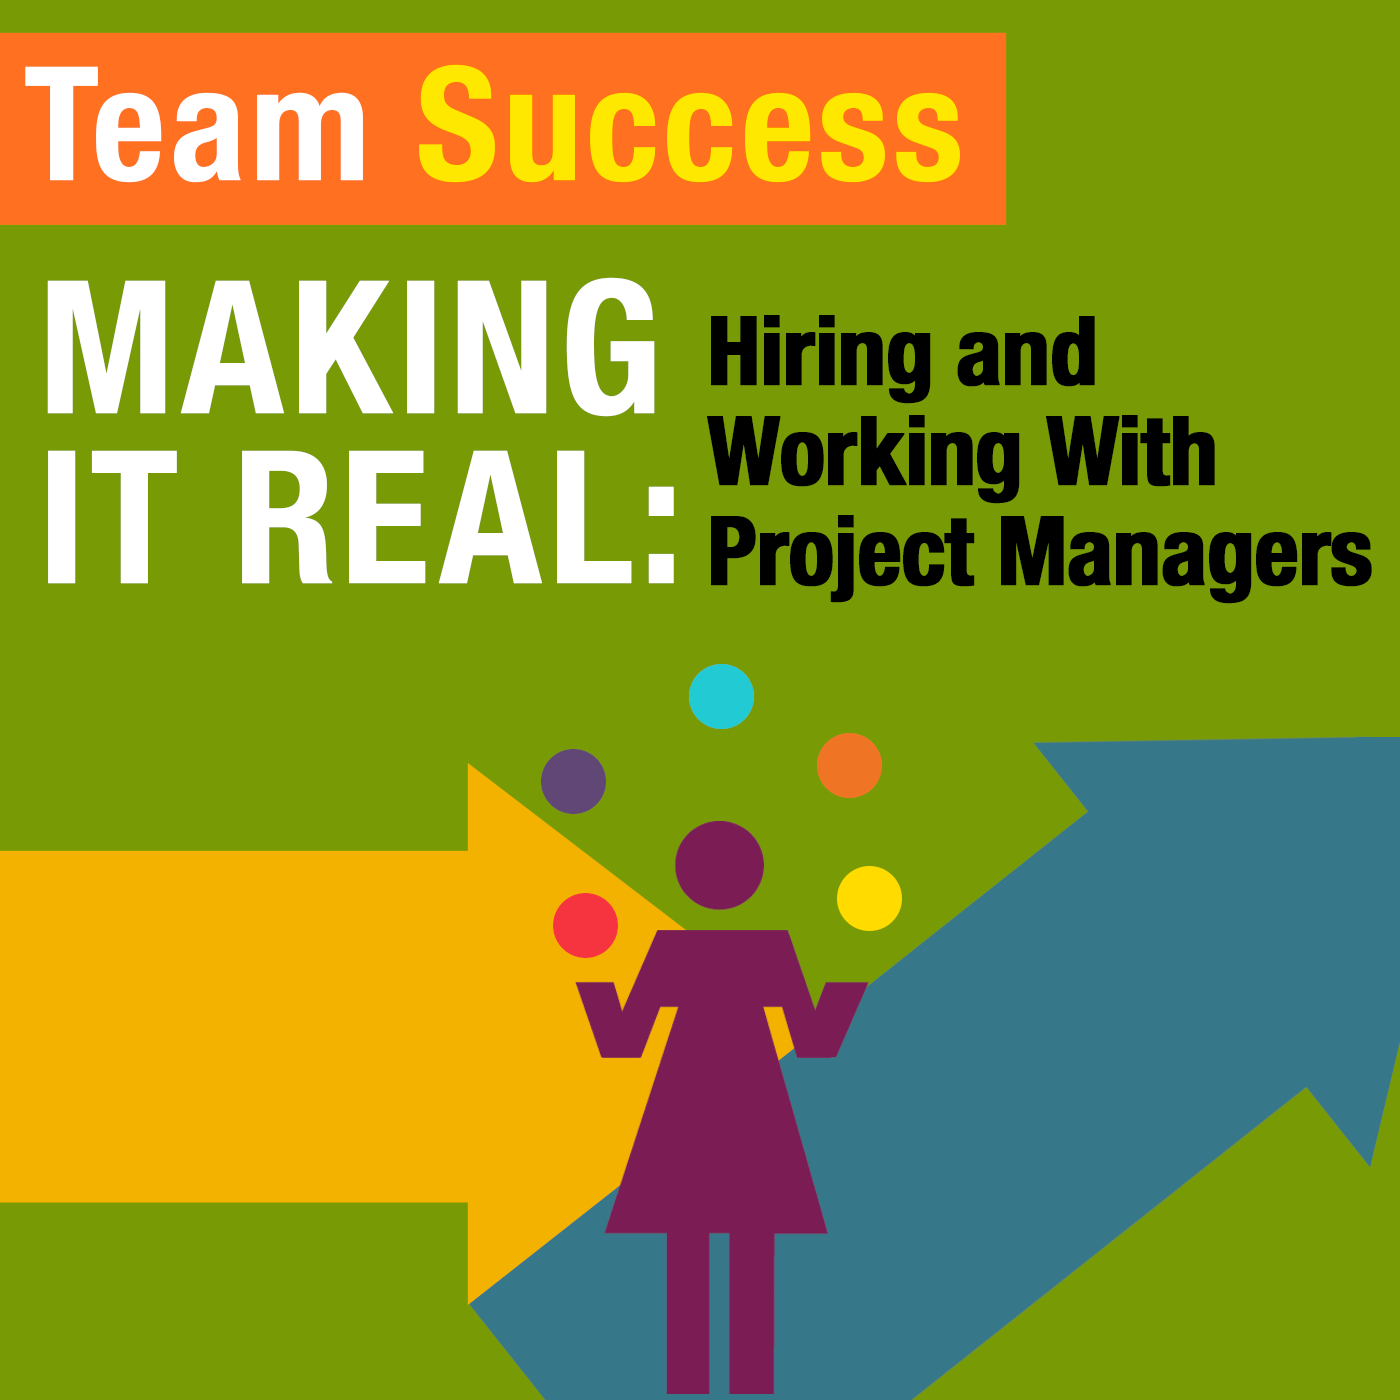 Making It Real: Hiring And Working With Project Managers